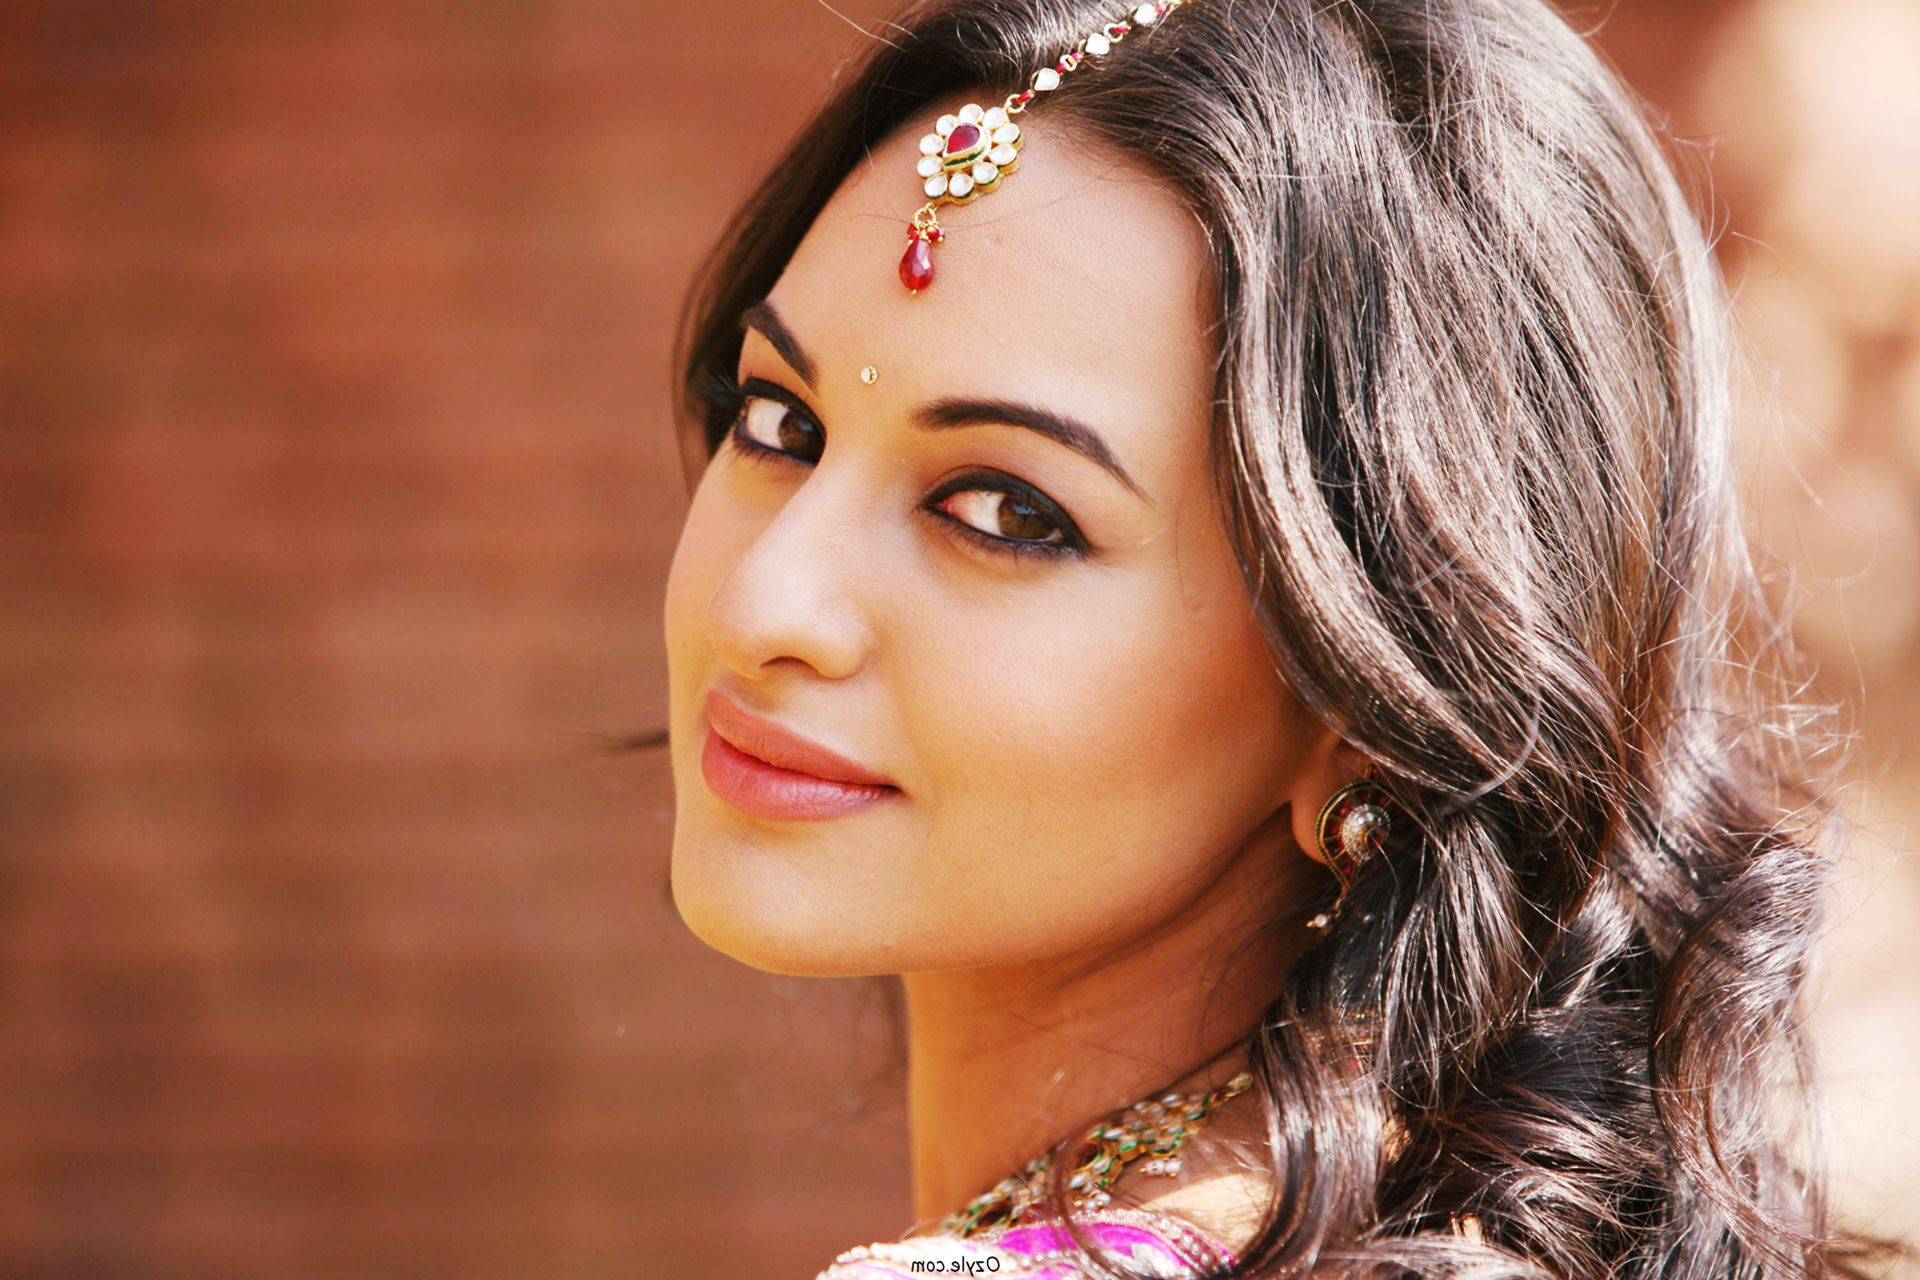 sonakshi sinha hd wallpapers - movie hd wallpapers